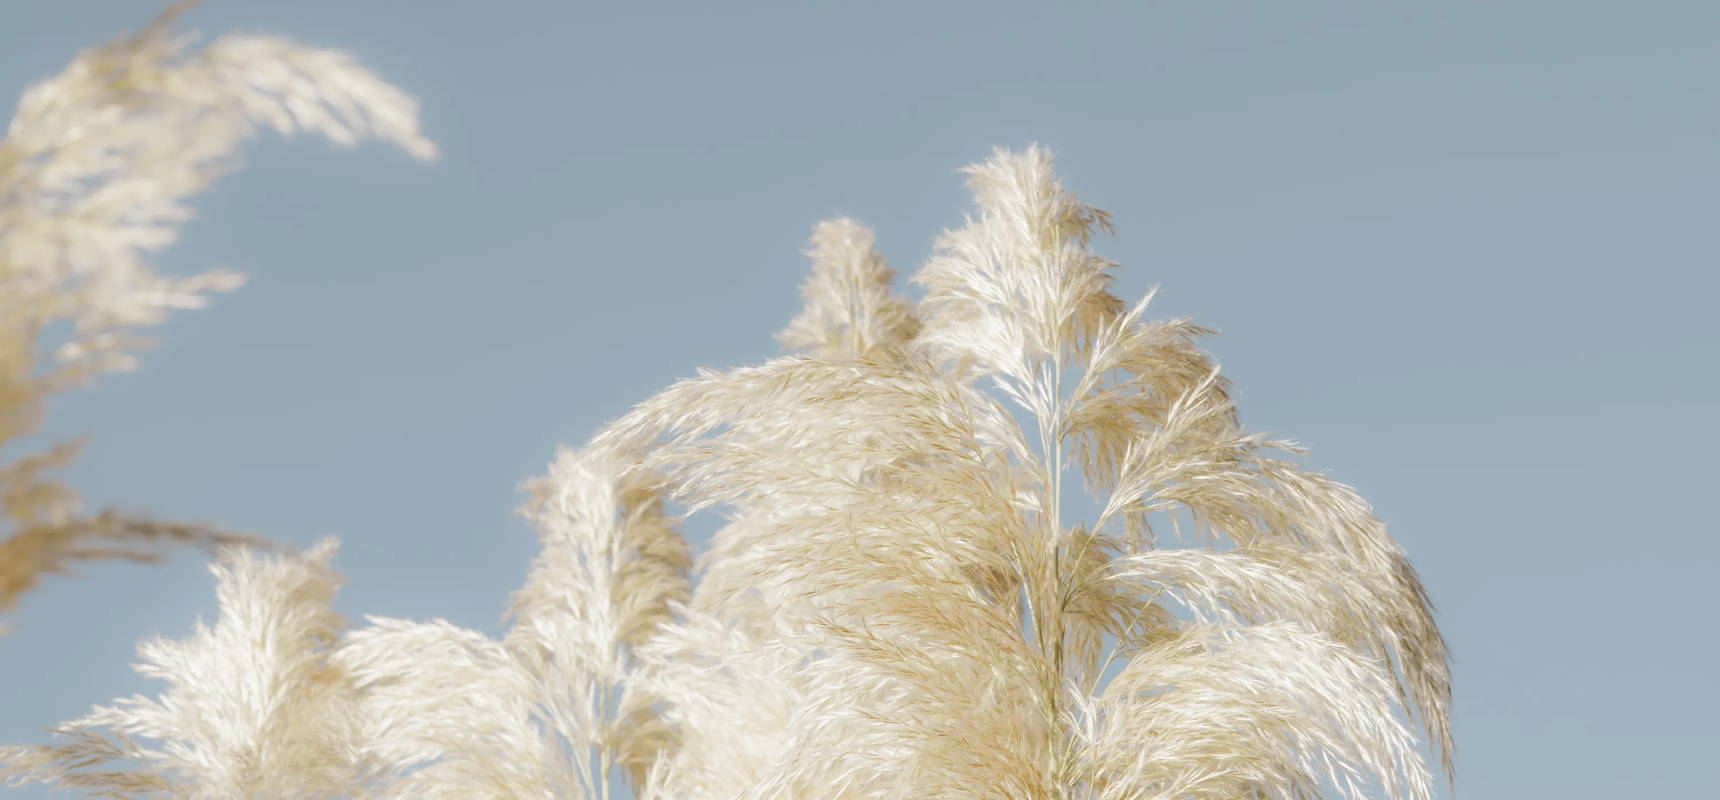 Tan weeds with a soft blue sky in the background